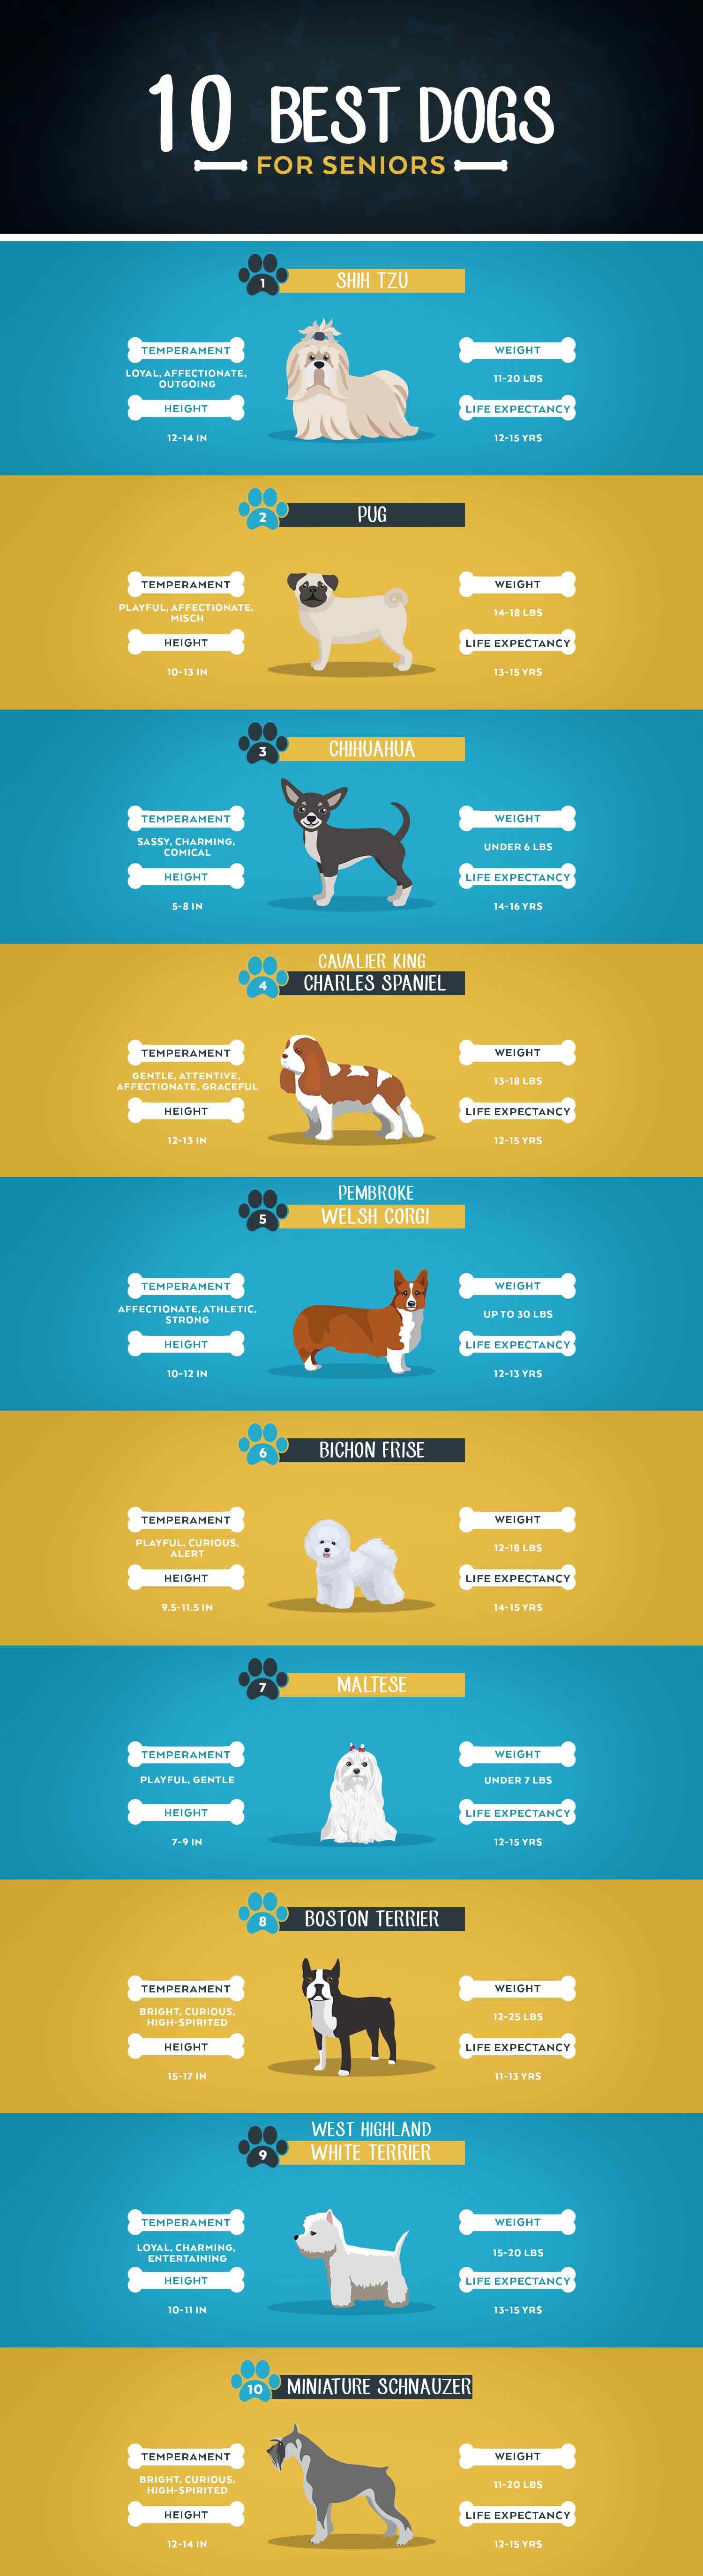 top 10 dog breeds for seniors infographic